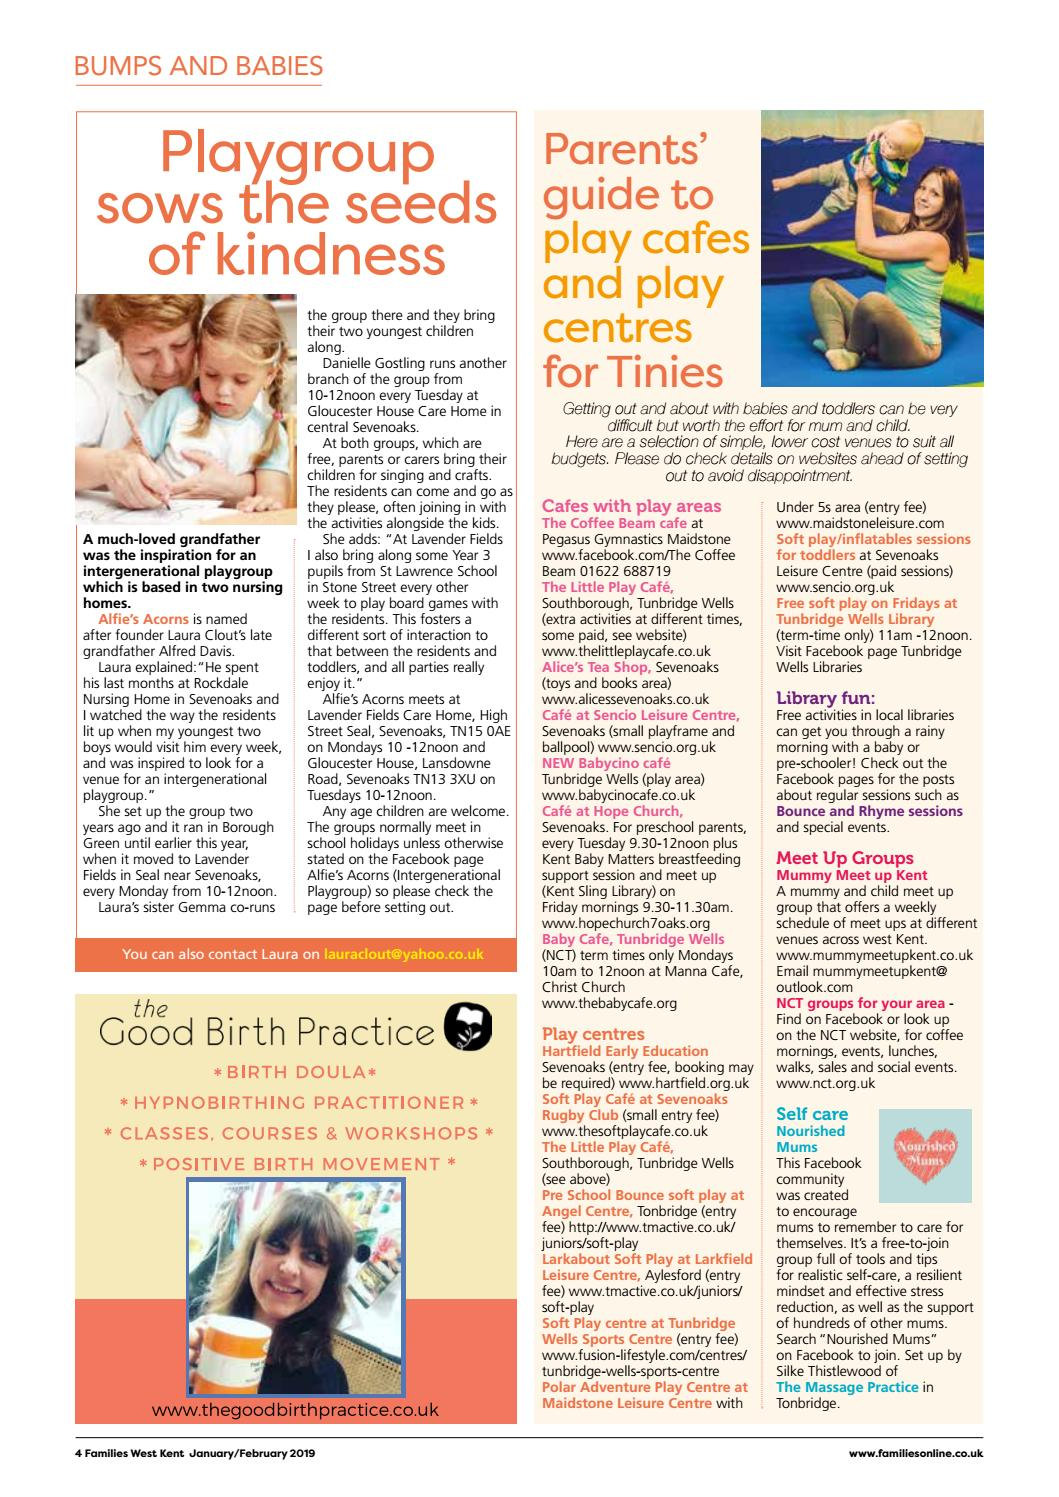 Families West Kent Jan/Feb 2019 by Families Magazine - issuu